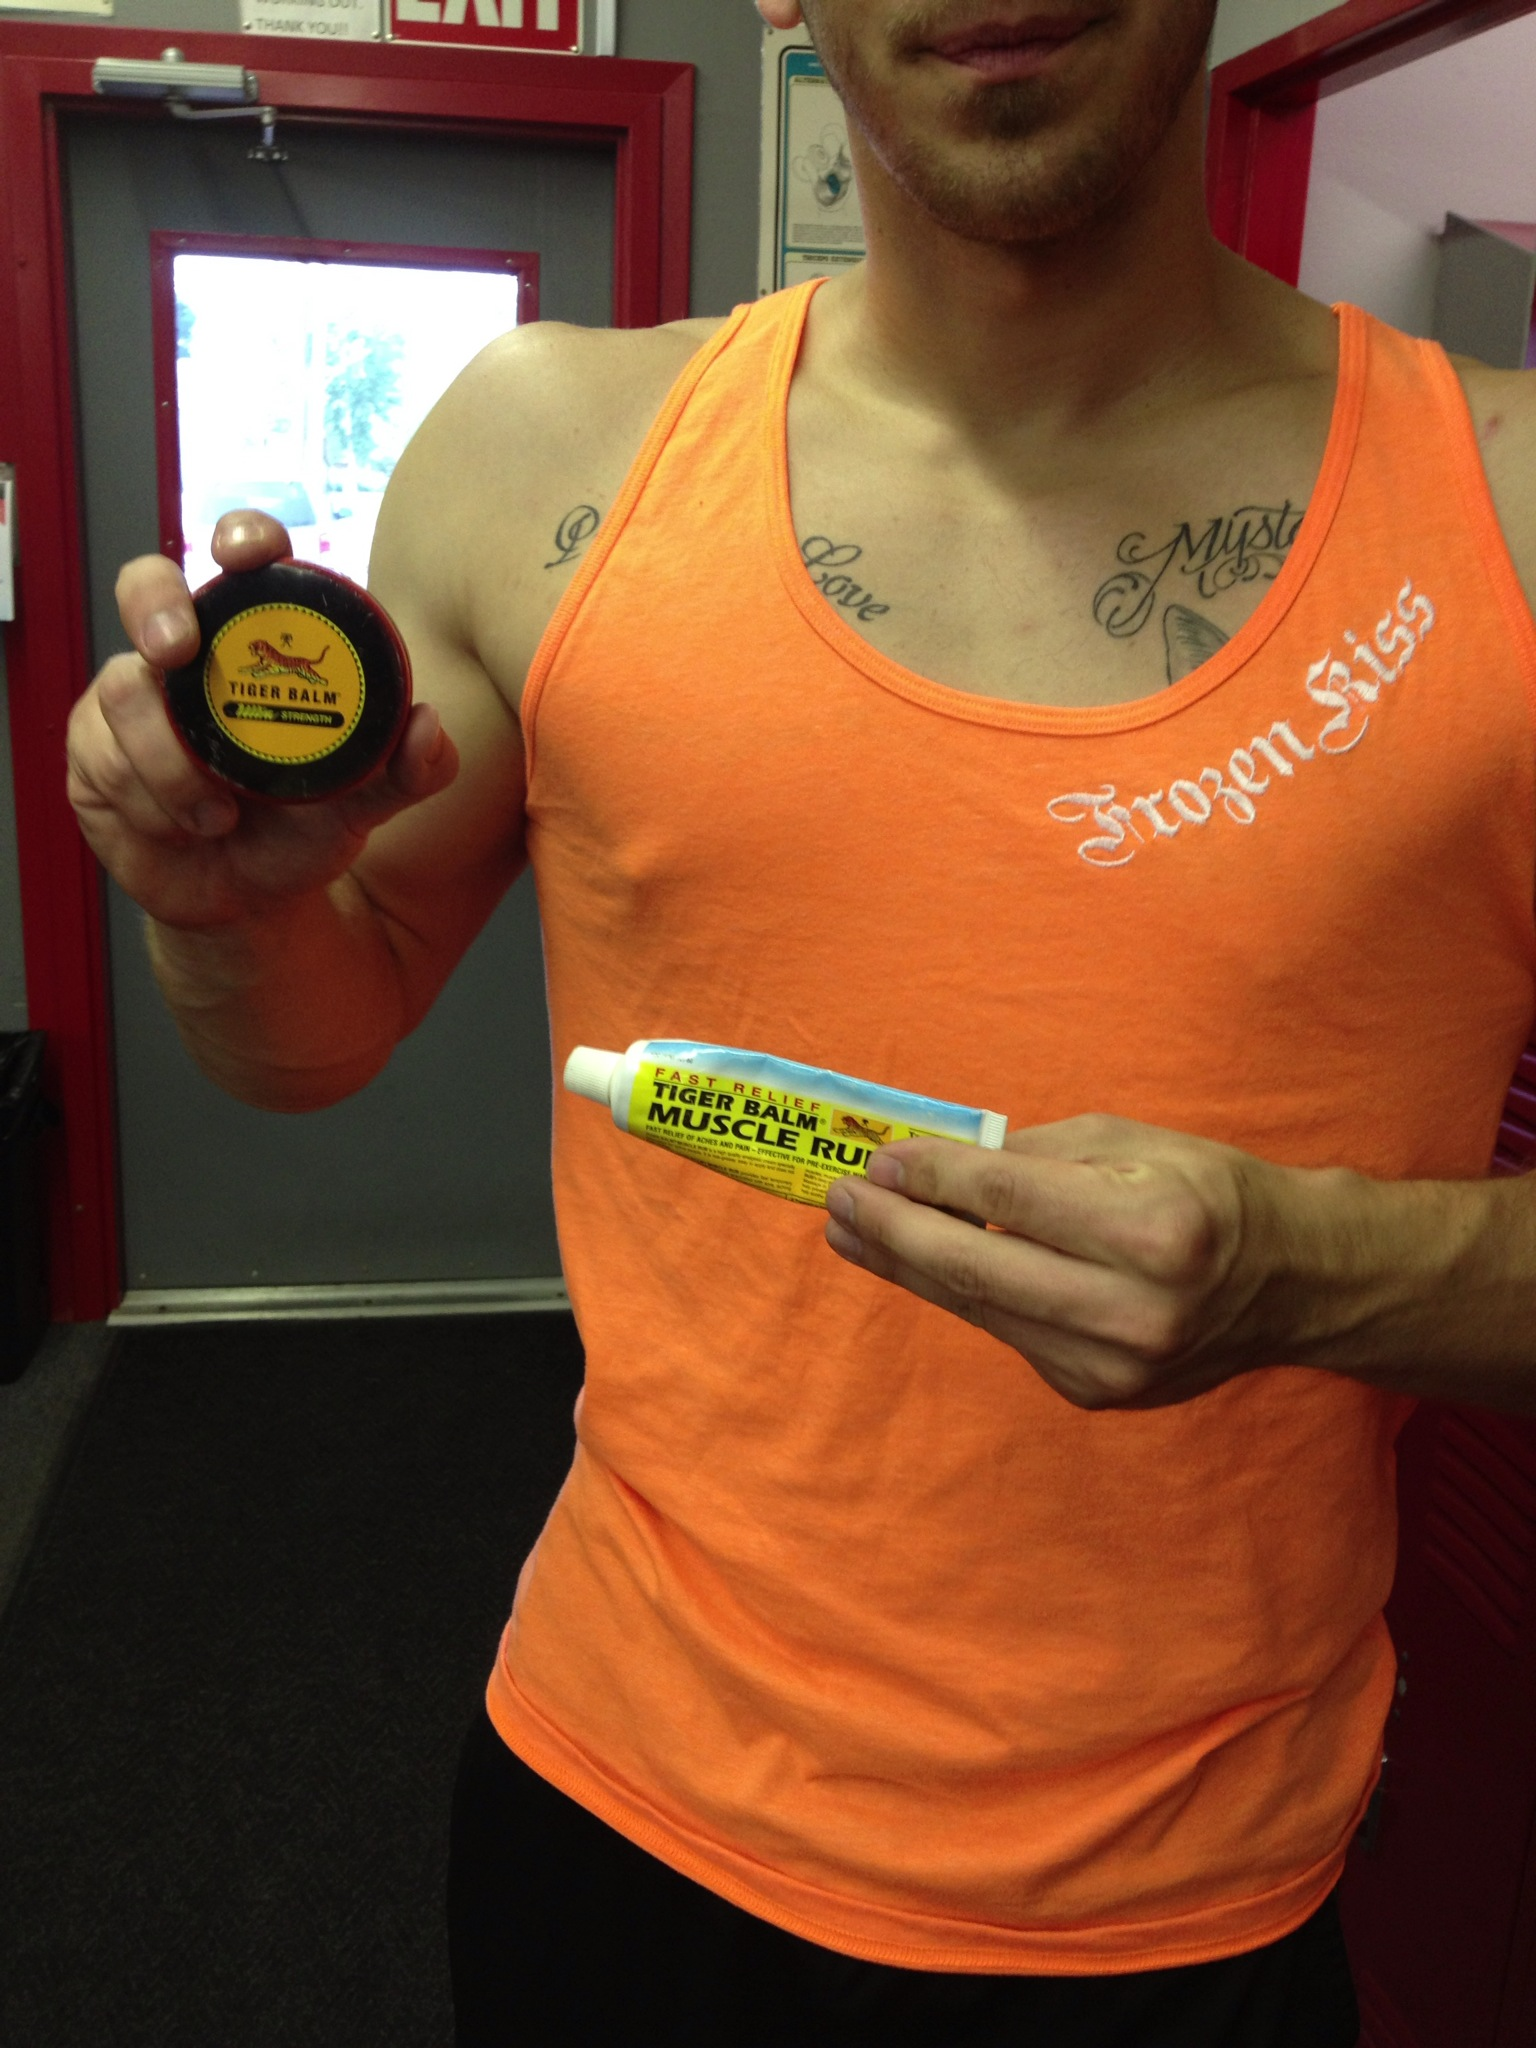 Sporting the tank with some tiger balm for pre-workout